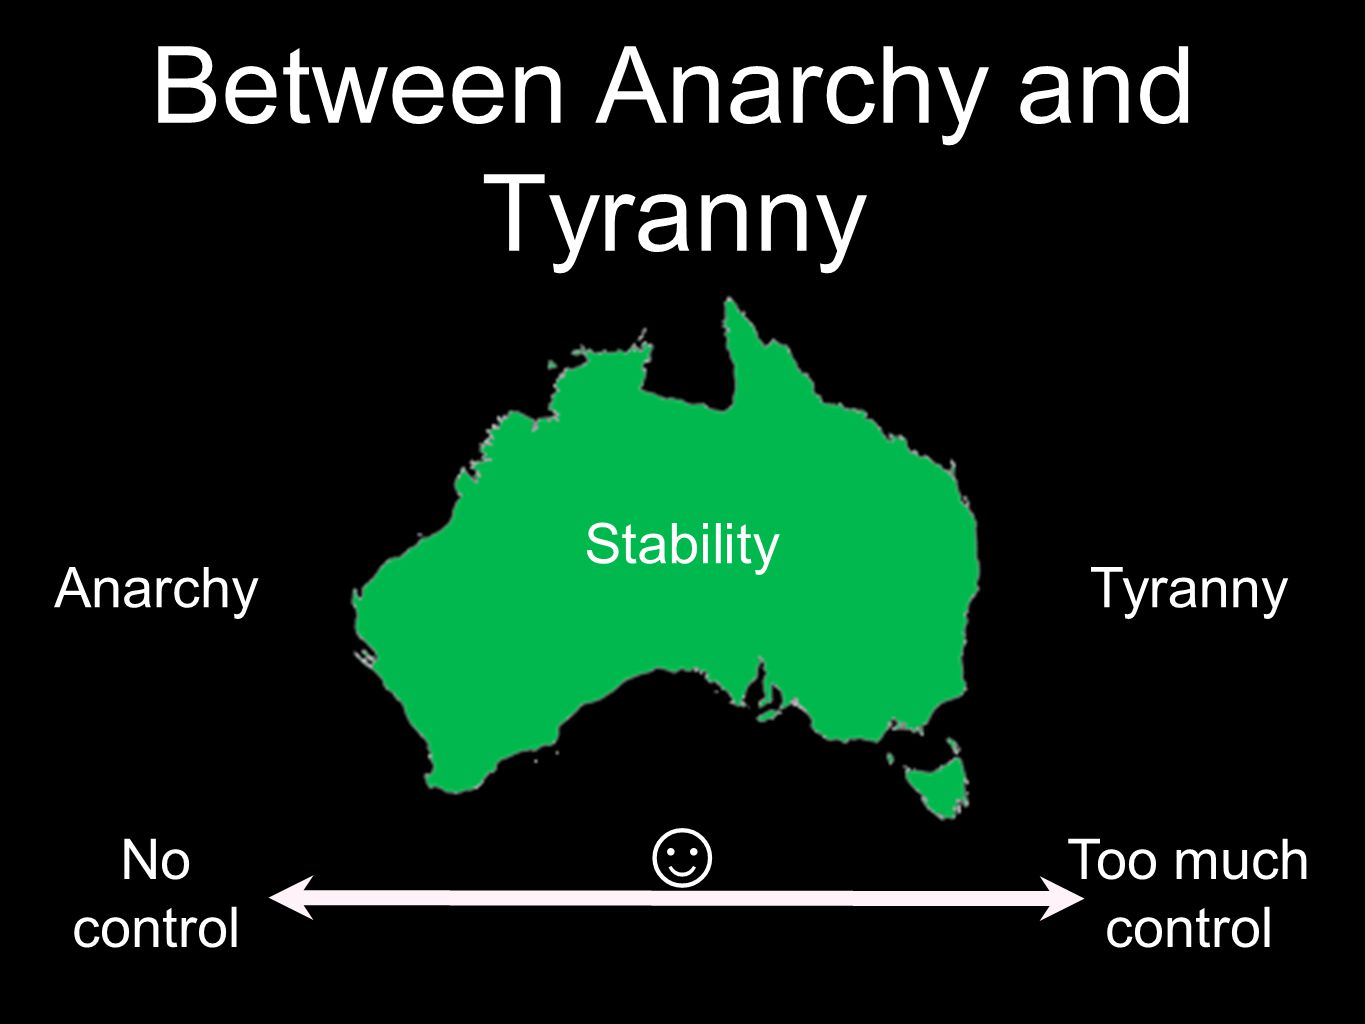 Between Anarchy and Tyranny